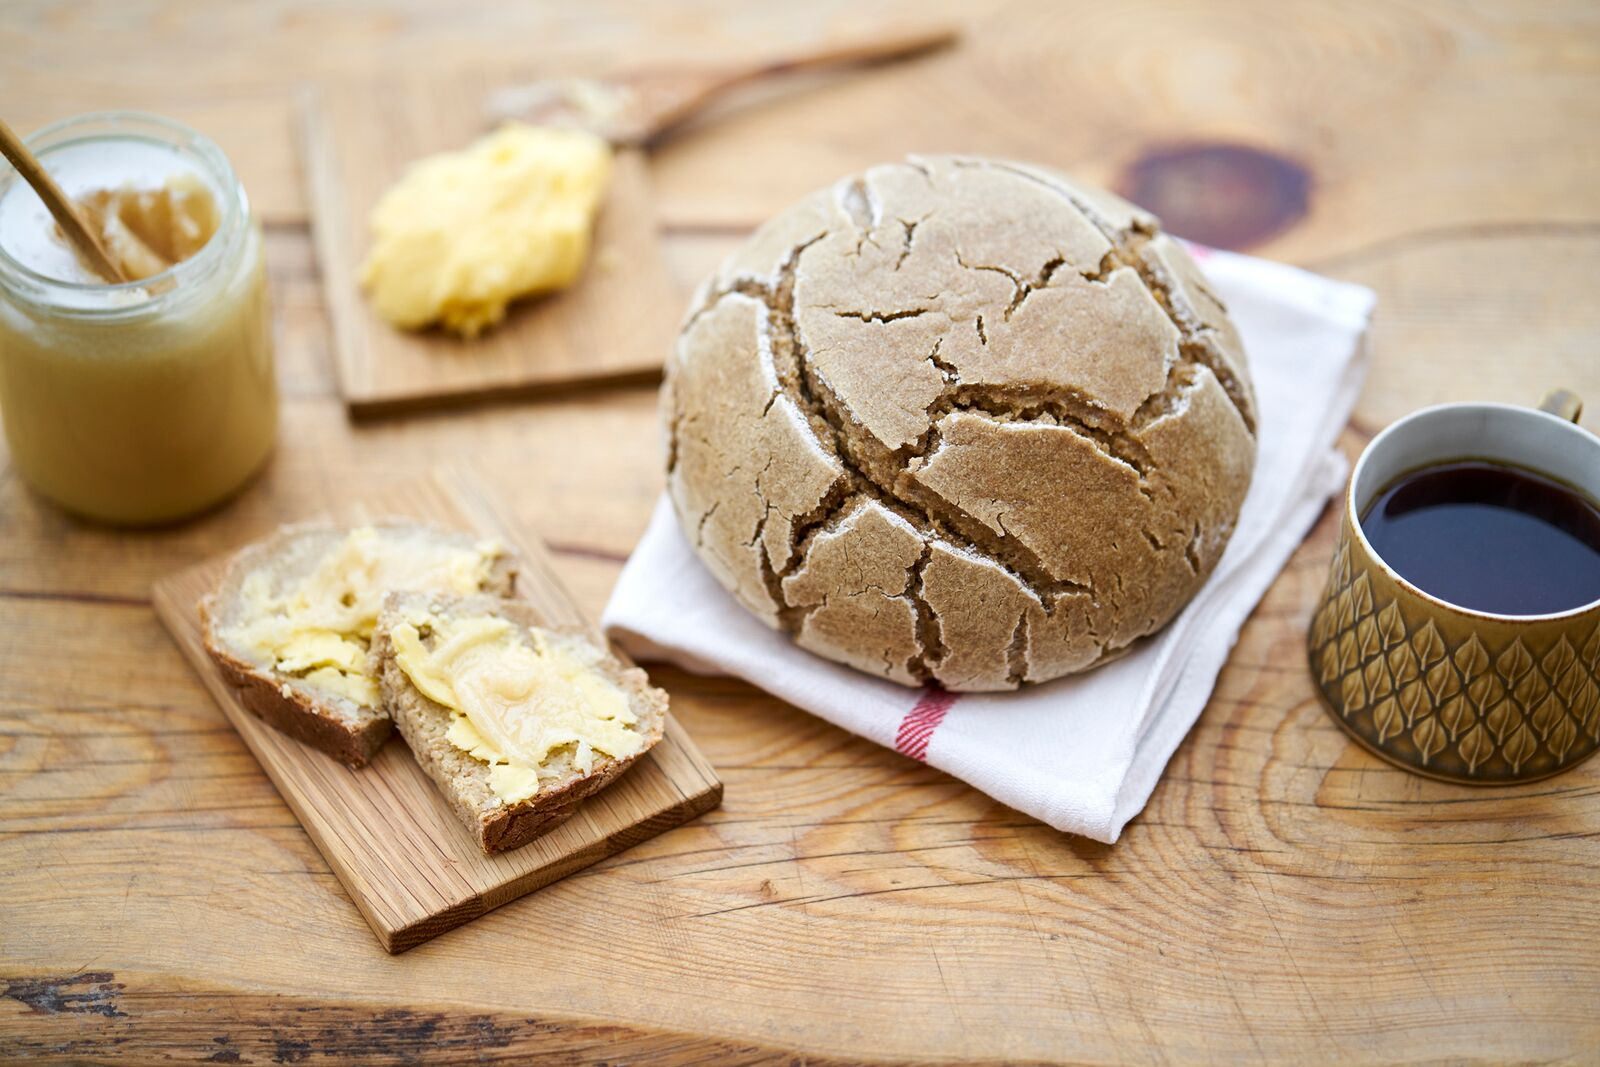 Sourdough bread with butter and honey. Photo: Alexander Benjaminsen.